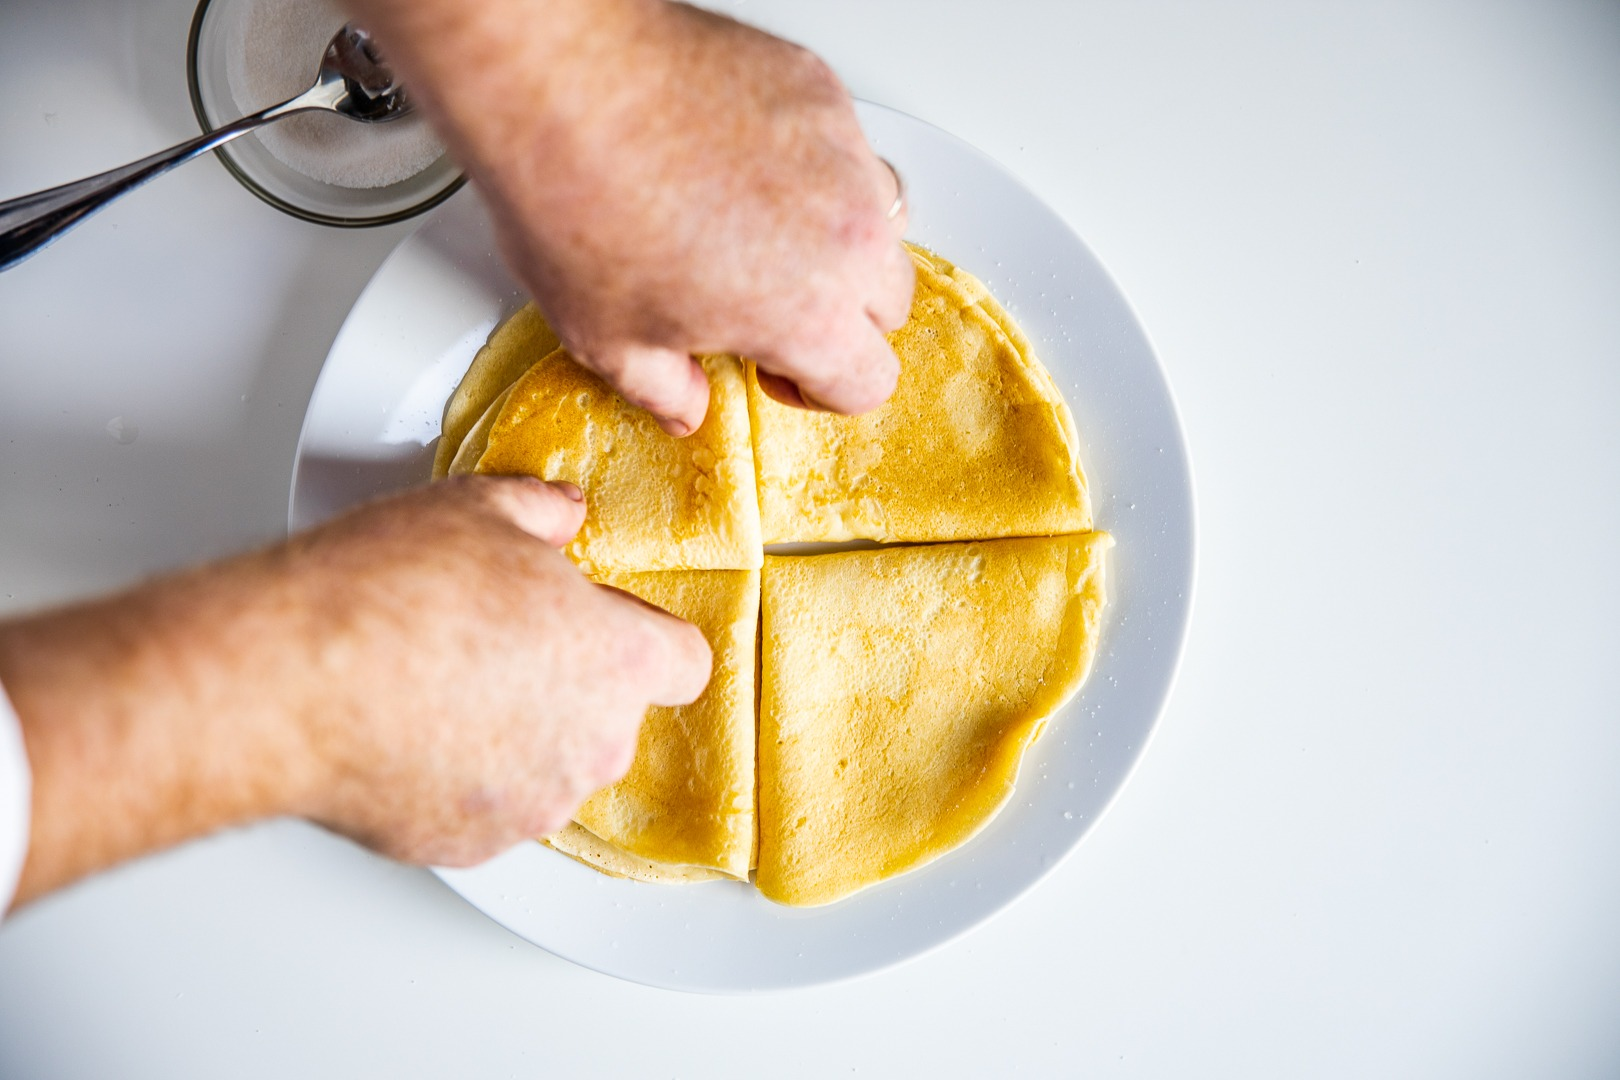 Arranging crepes on a plate